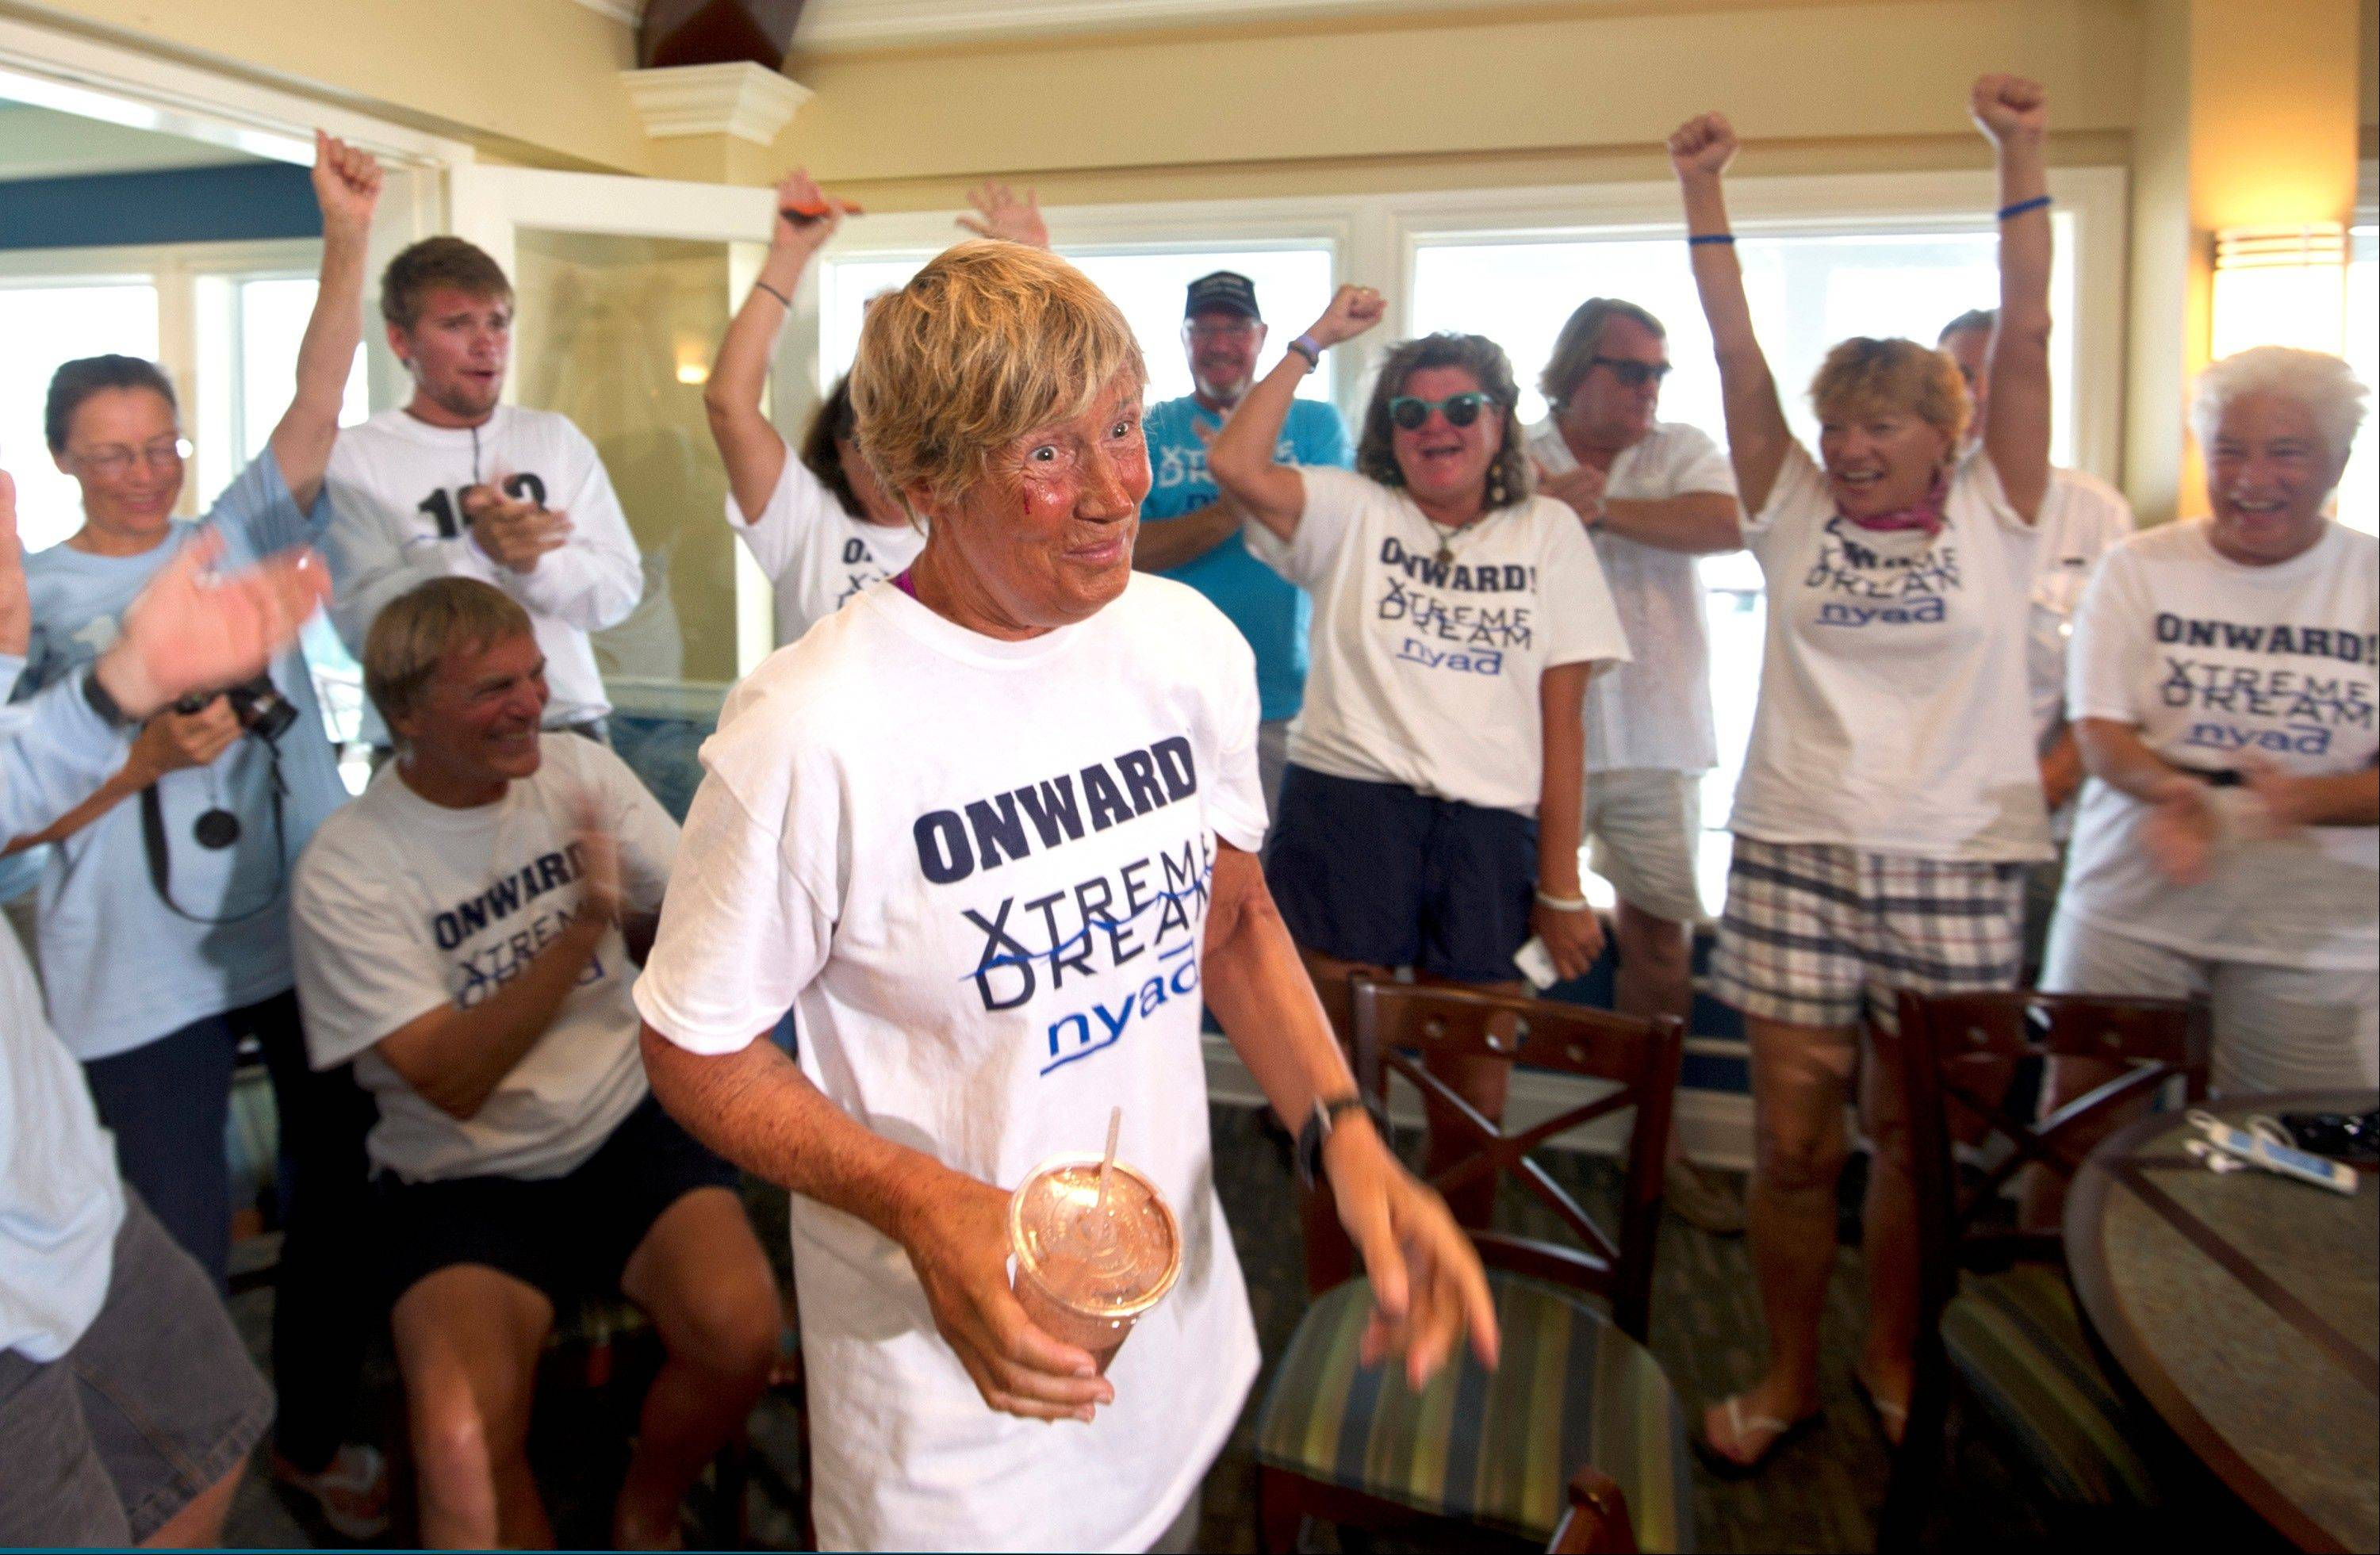 In this photo provided by the Florida Keys News Bureau, endurance swimmer Diana Nyad is cheered by her crew just before beginning a news conference Tuesday in Key West, Fla. Nyad, 64, is the first swimmer to cross the Florida Straits without the security of a shark cage.